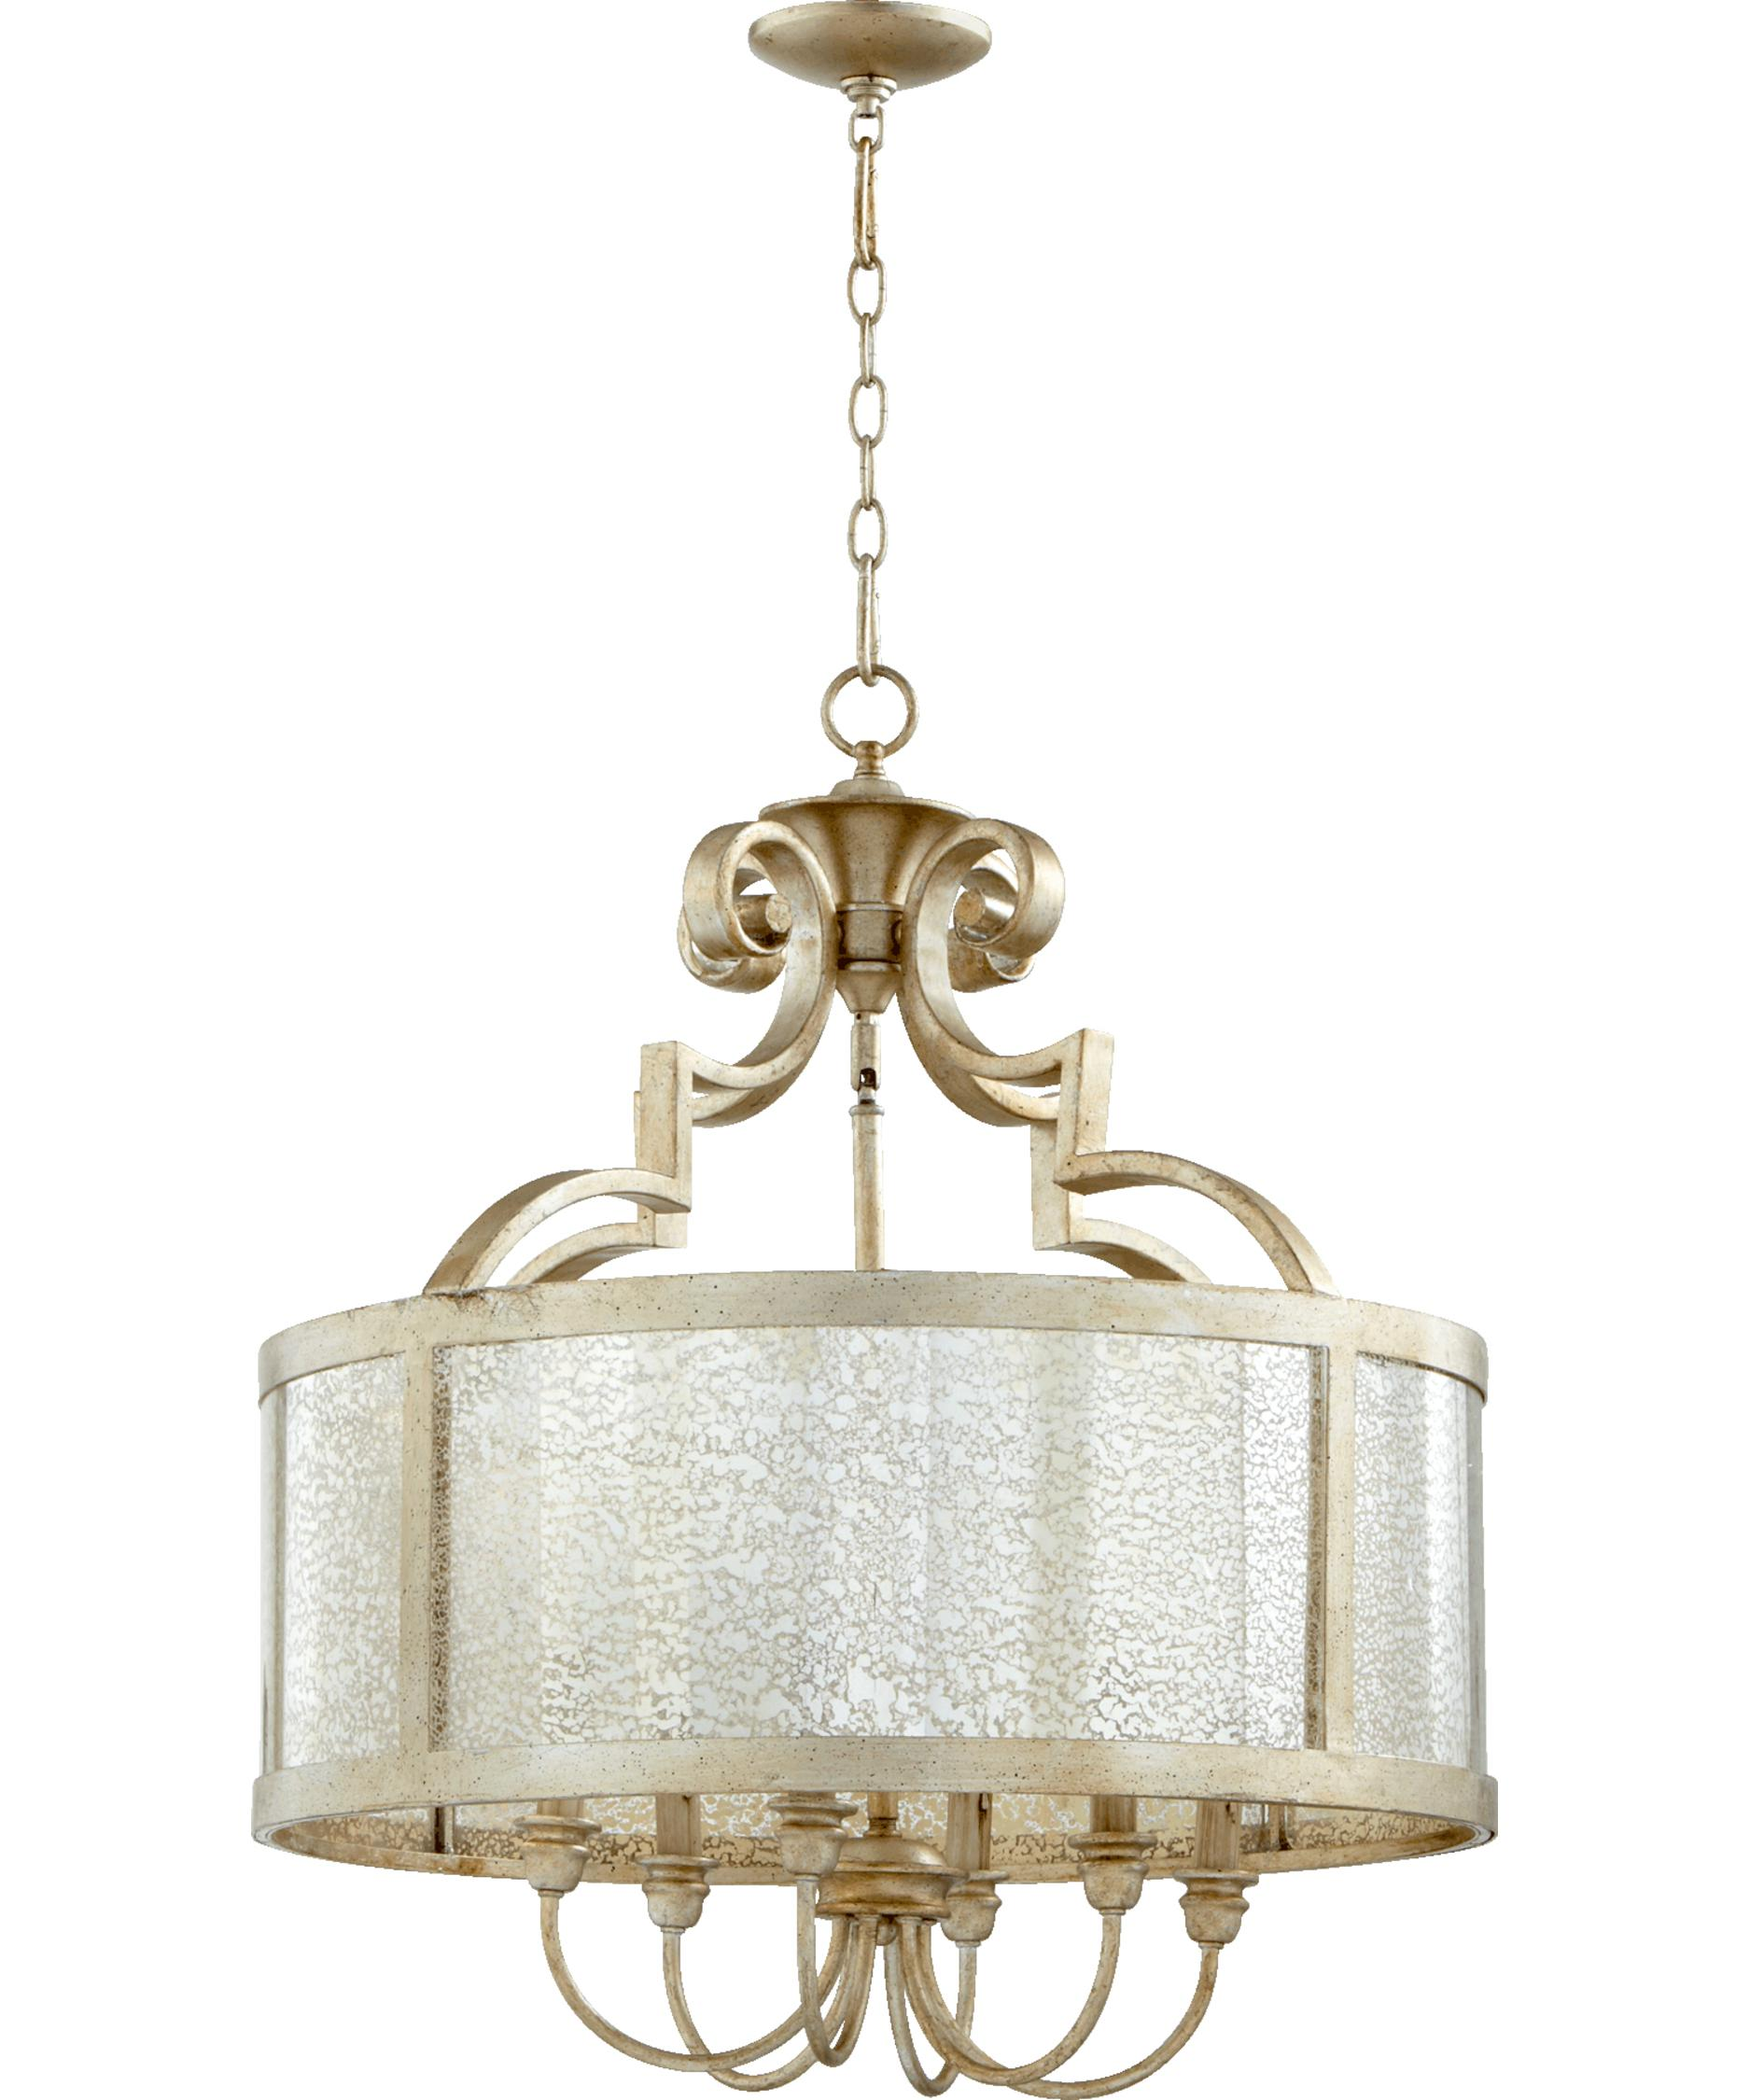 quorum lighting quorum international 6481 champlain 24 inch wide 6 light chandelier |  capitol FDJDSMG